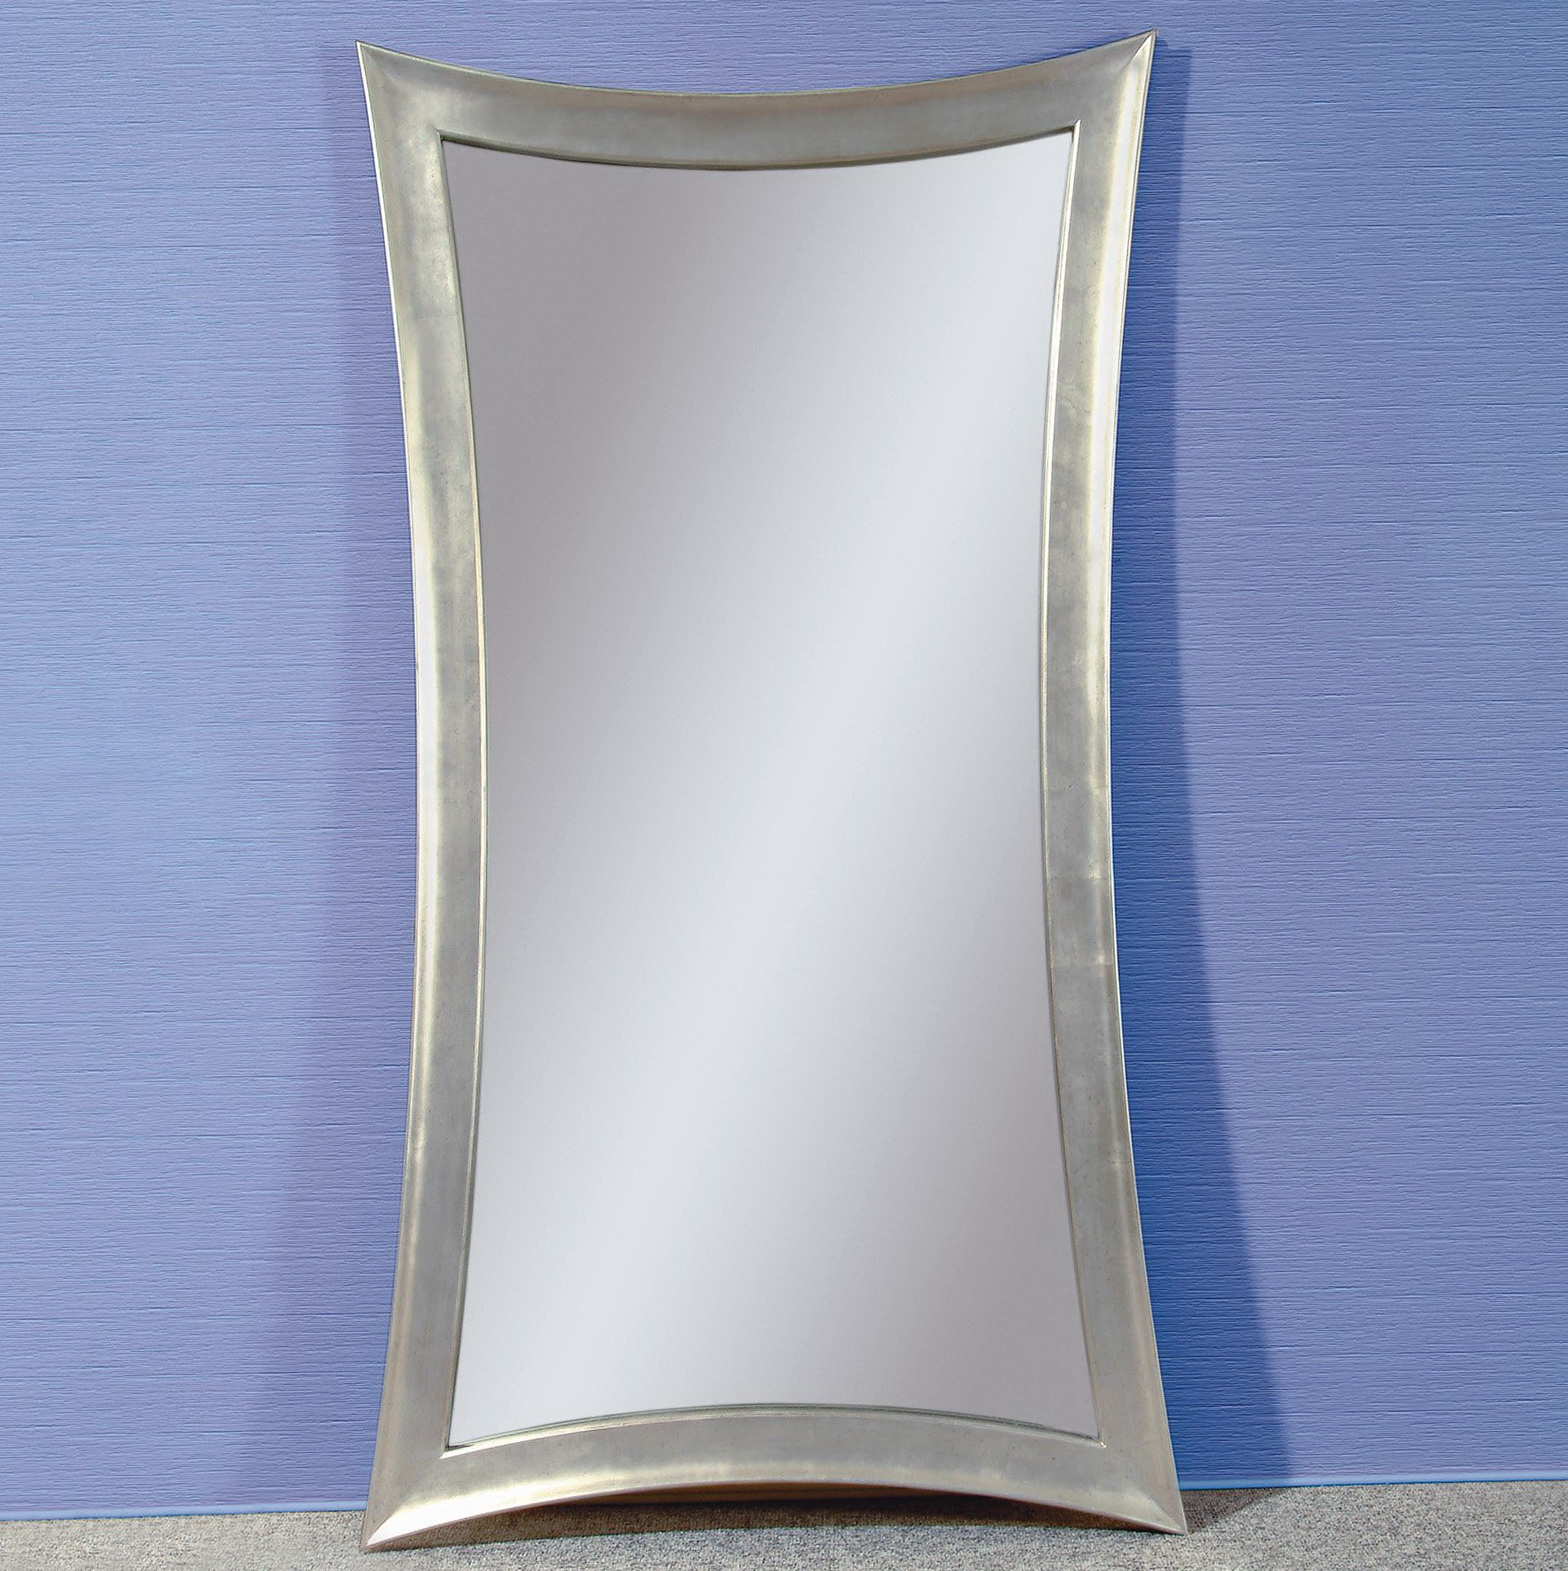 Leaning Floor Mirrors For Sale